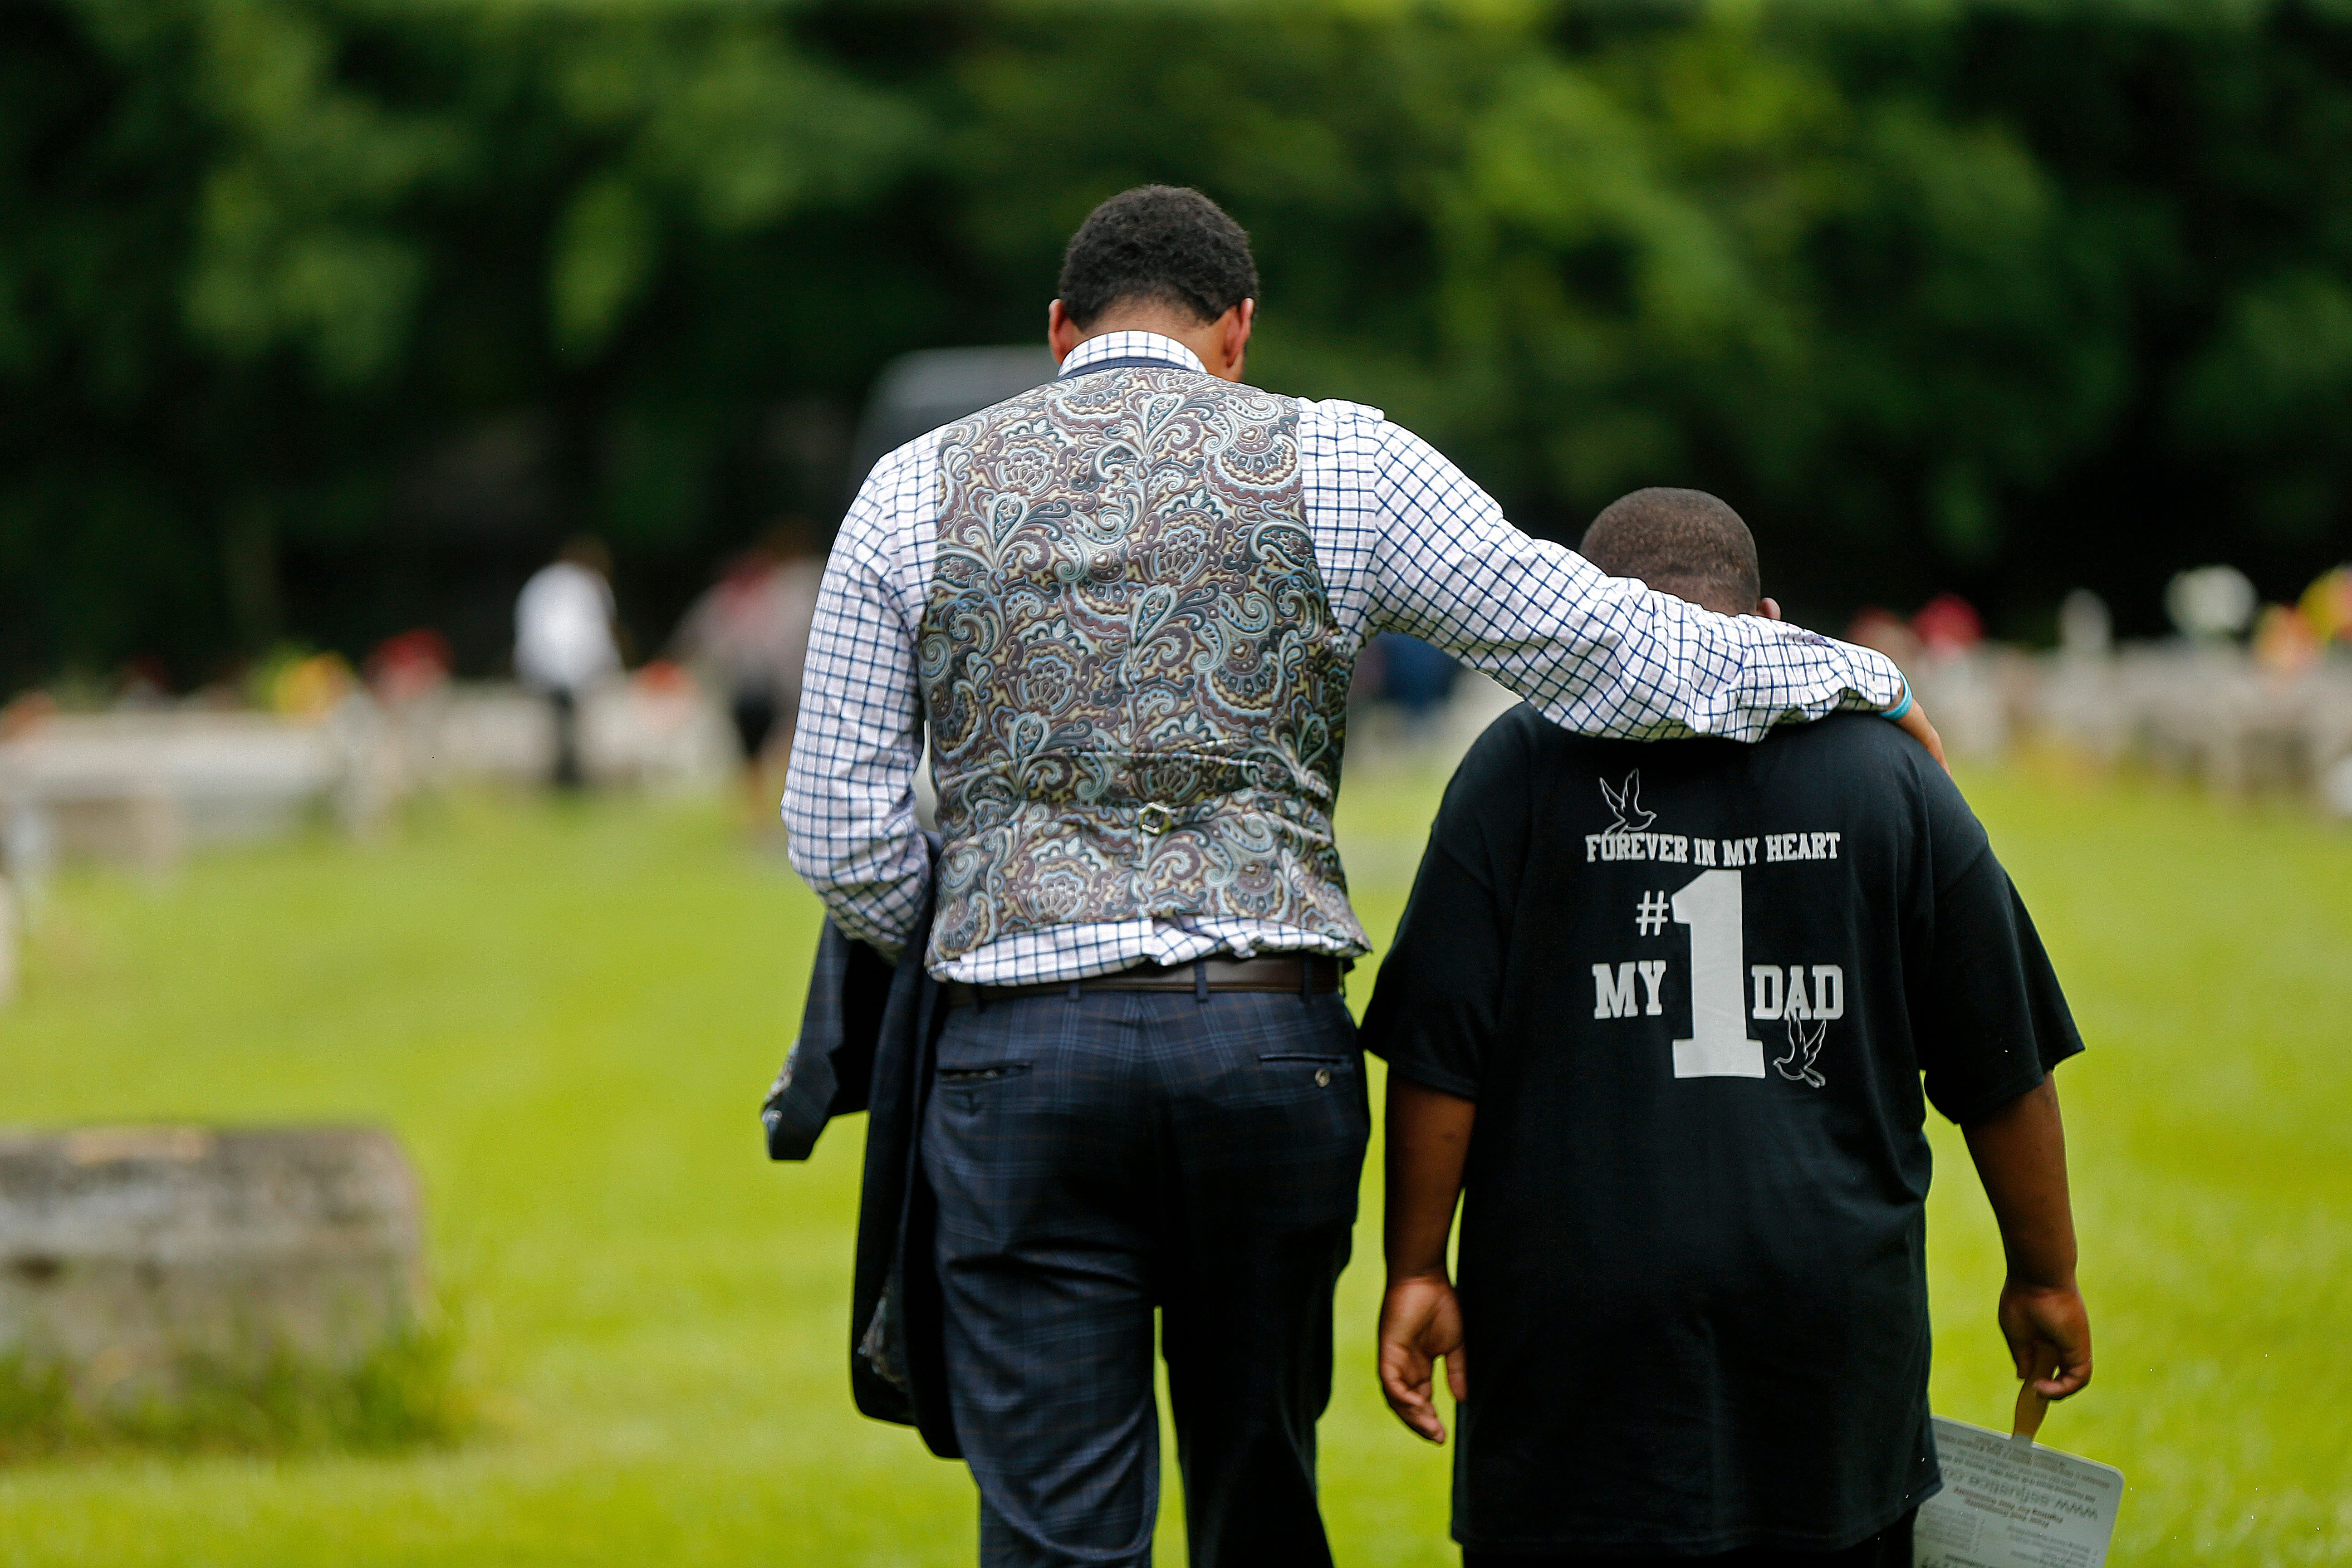 Family attorney Justin Bamberg (L), comforts Na'Quincy, 10, son of Alton Sterling, at the conclusion Alton's burial at the Mount Pilgrim Benevolent Society Cemetery in Baton Rouge, Louisiana, U.S., July 15, 2016.   REUTERS/Gerald Herbert/Pool